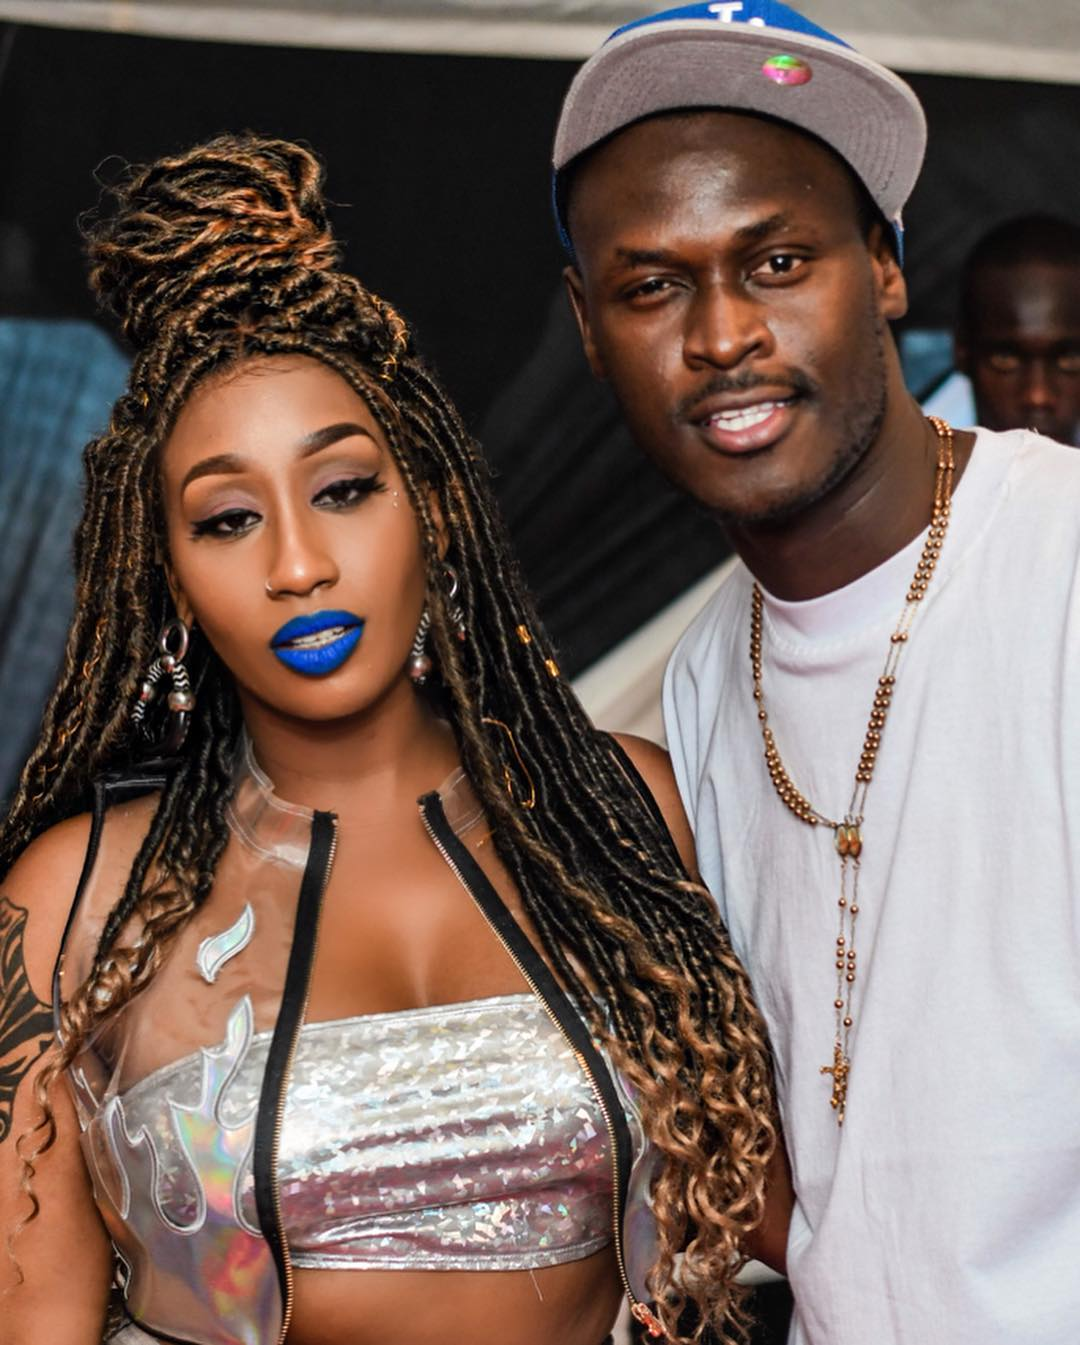 Victoria-Kimani-with-King-Kaka-at-the-event